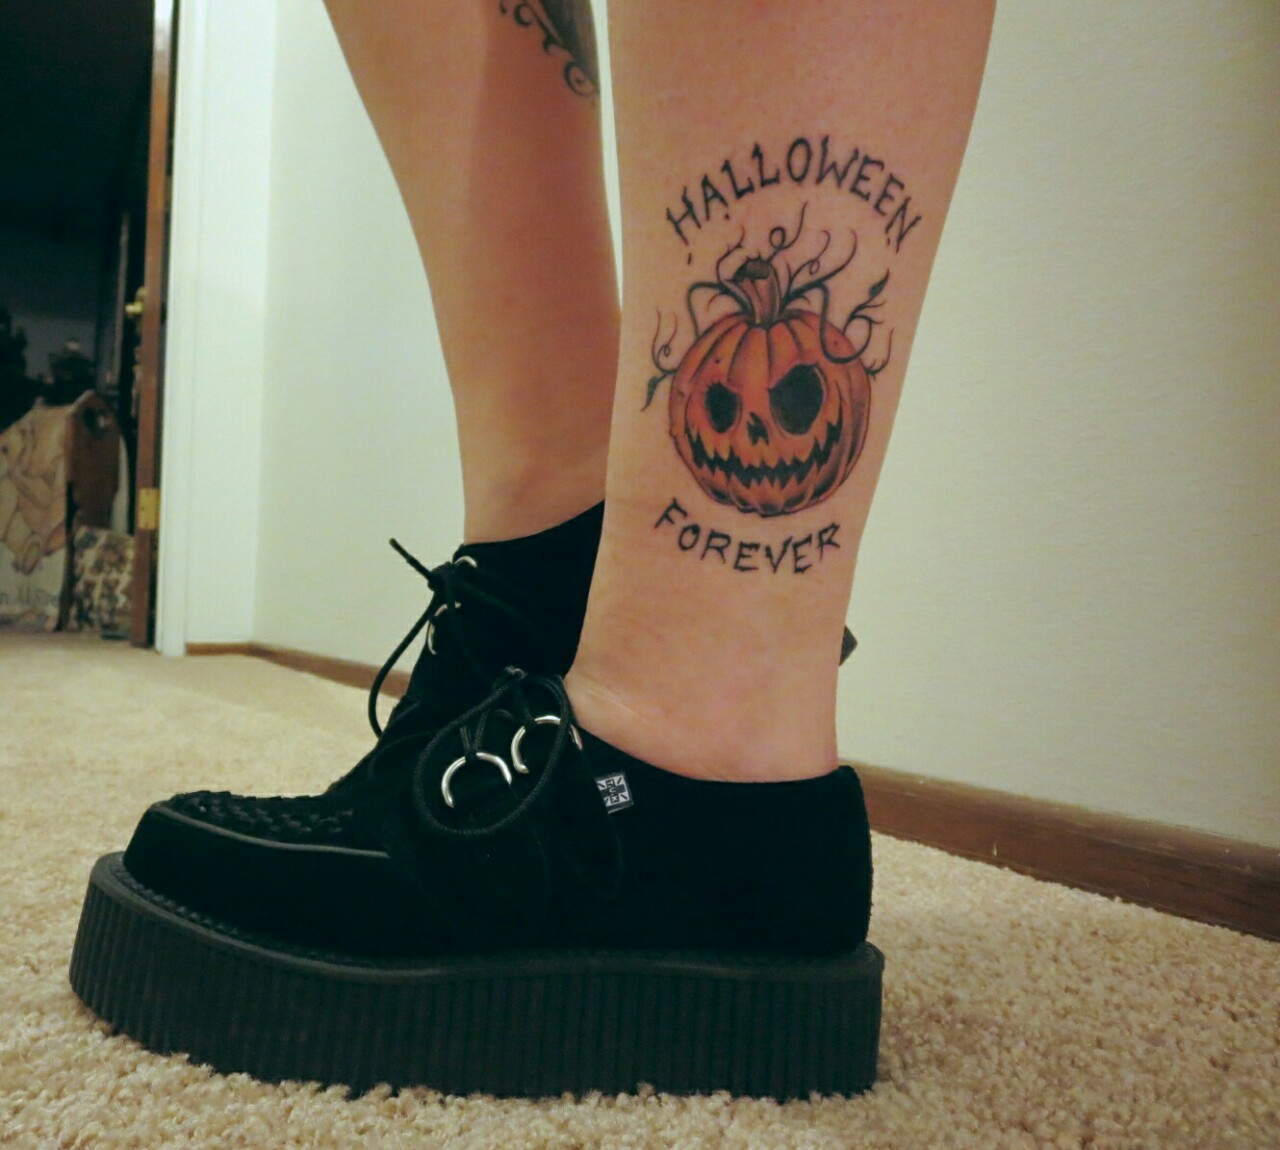 Pumking on leg with lettering